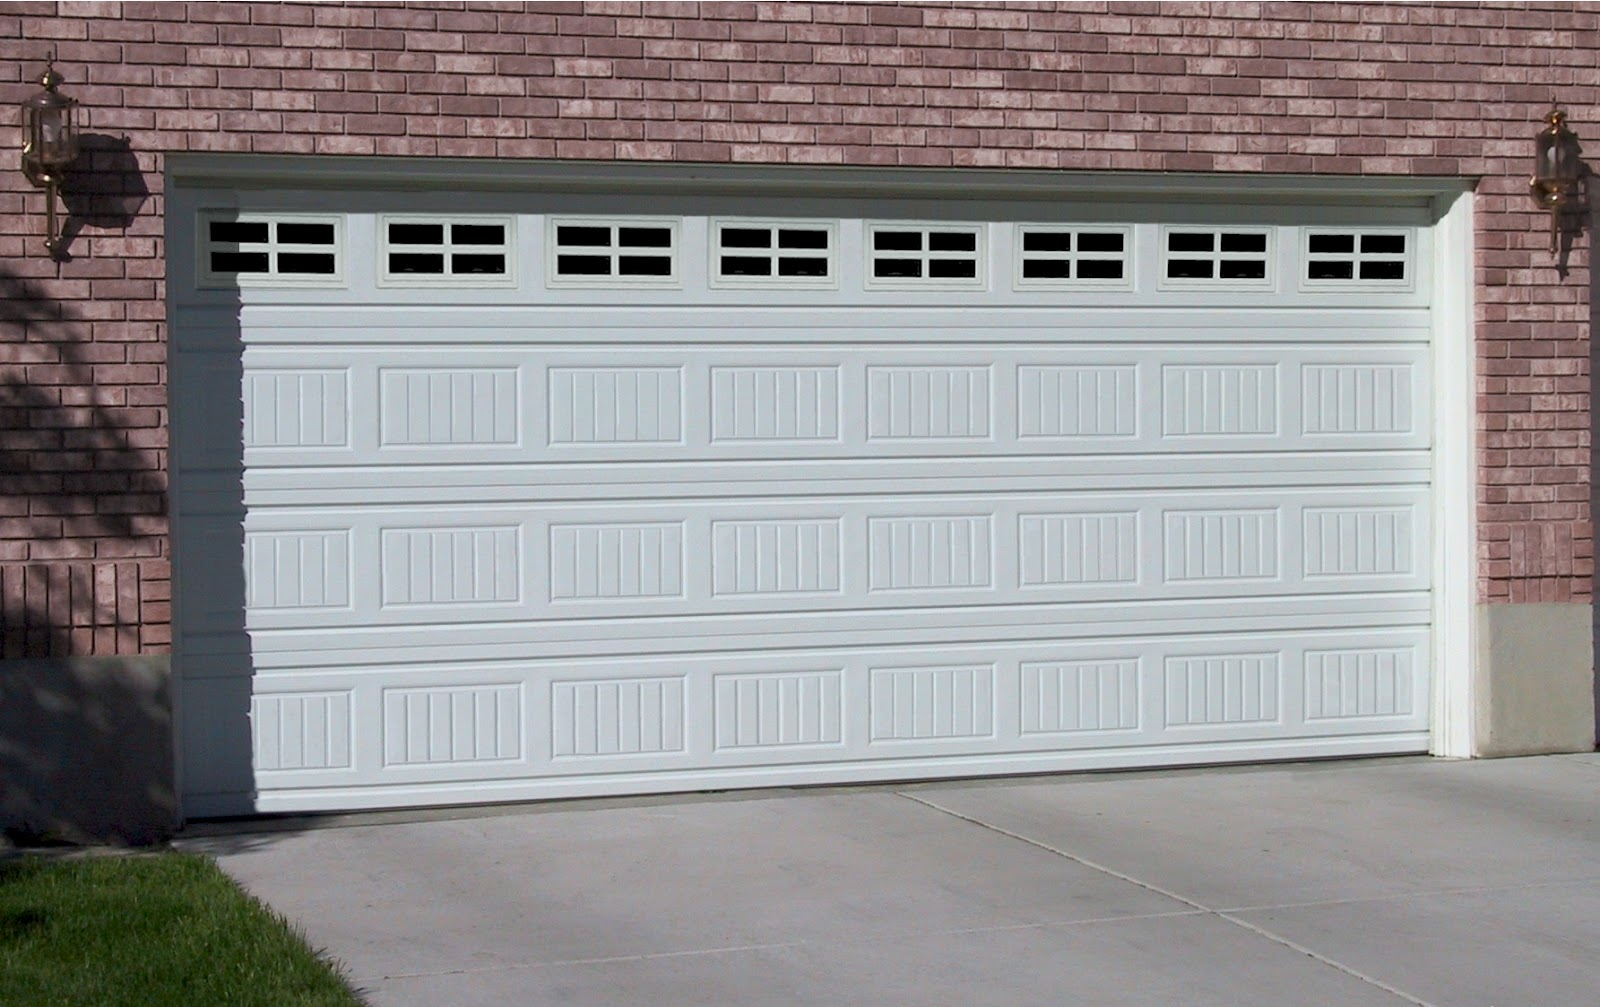 1007 #755856 Phoenix Garage Doors: Garage Door Installation Tips picture/photo Garages Doors 36391600